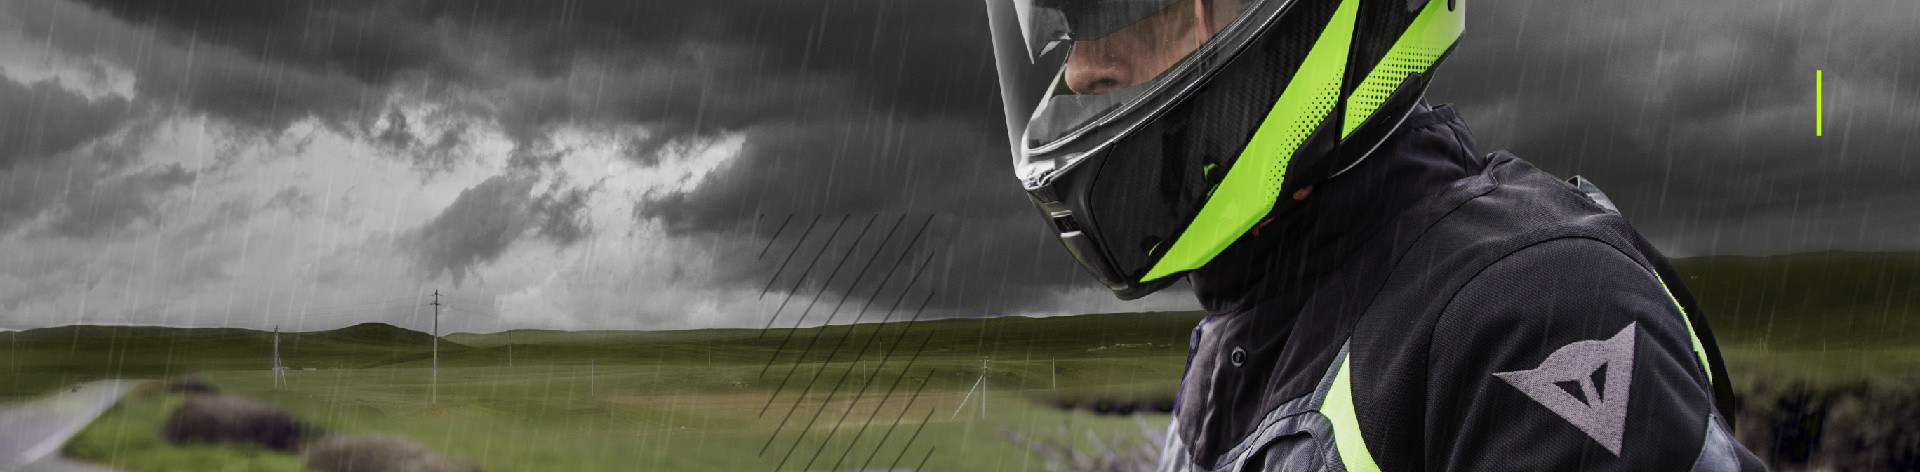 Dainese Riding in the rain